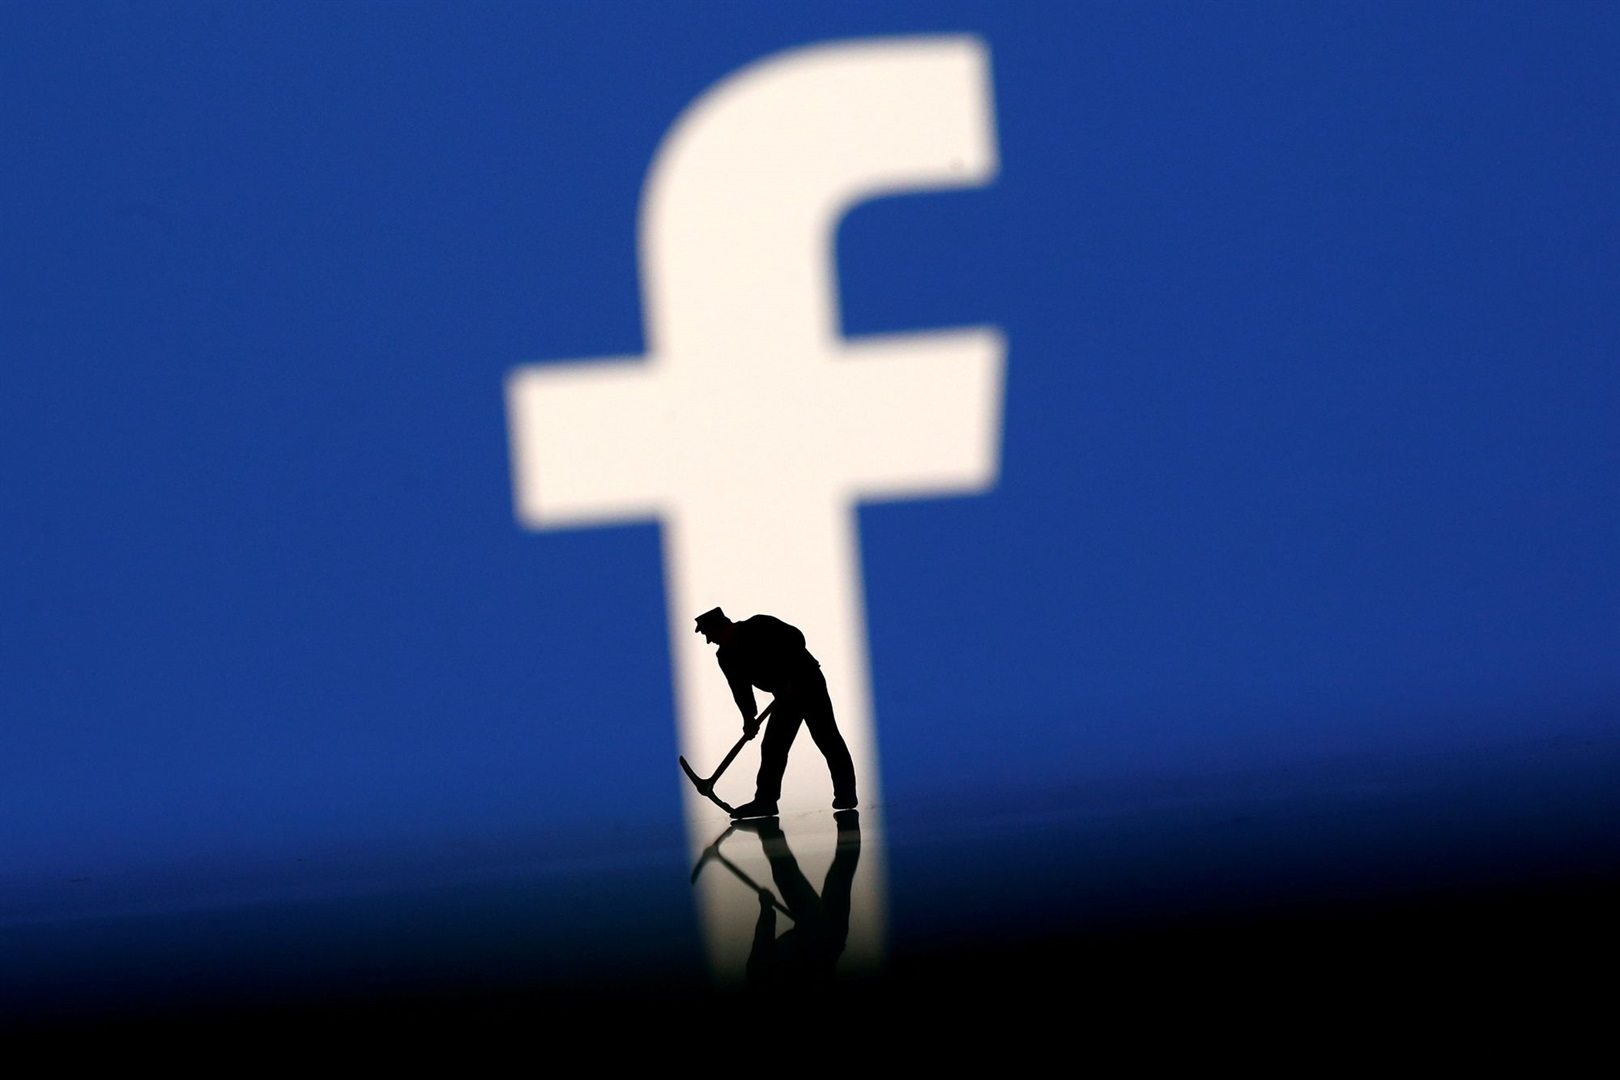 Facebook poorly monitored third-party developers access to data